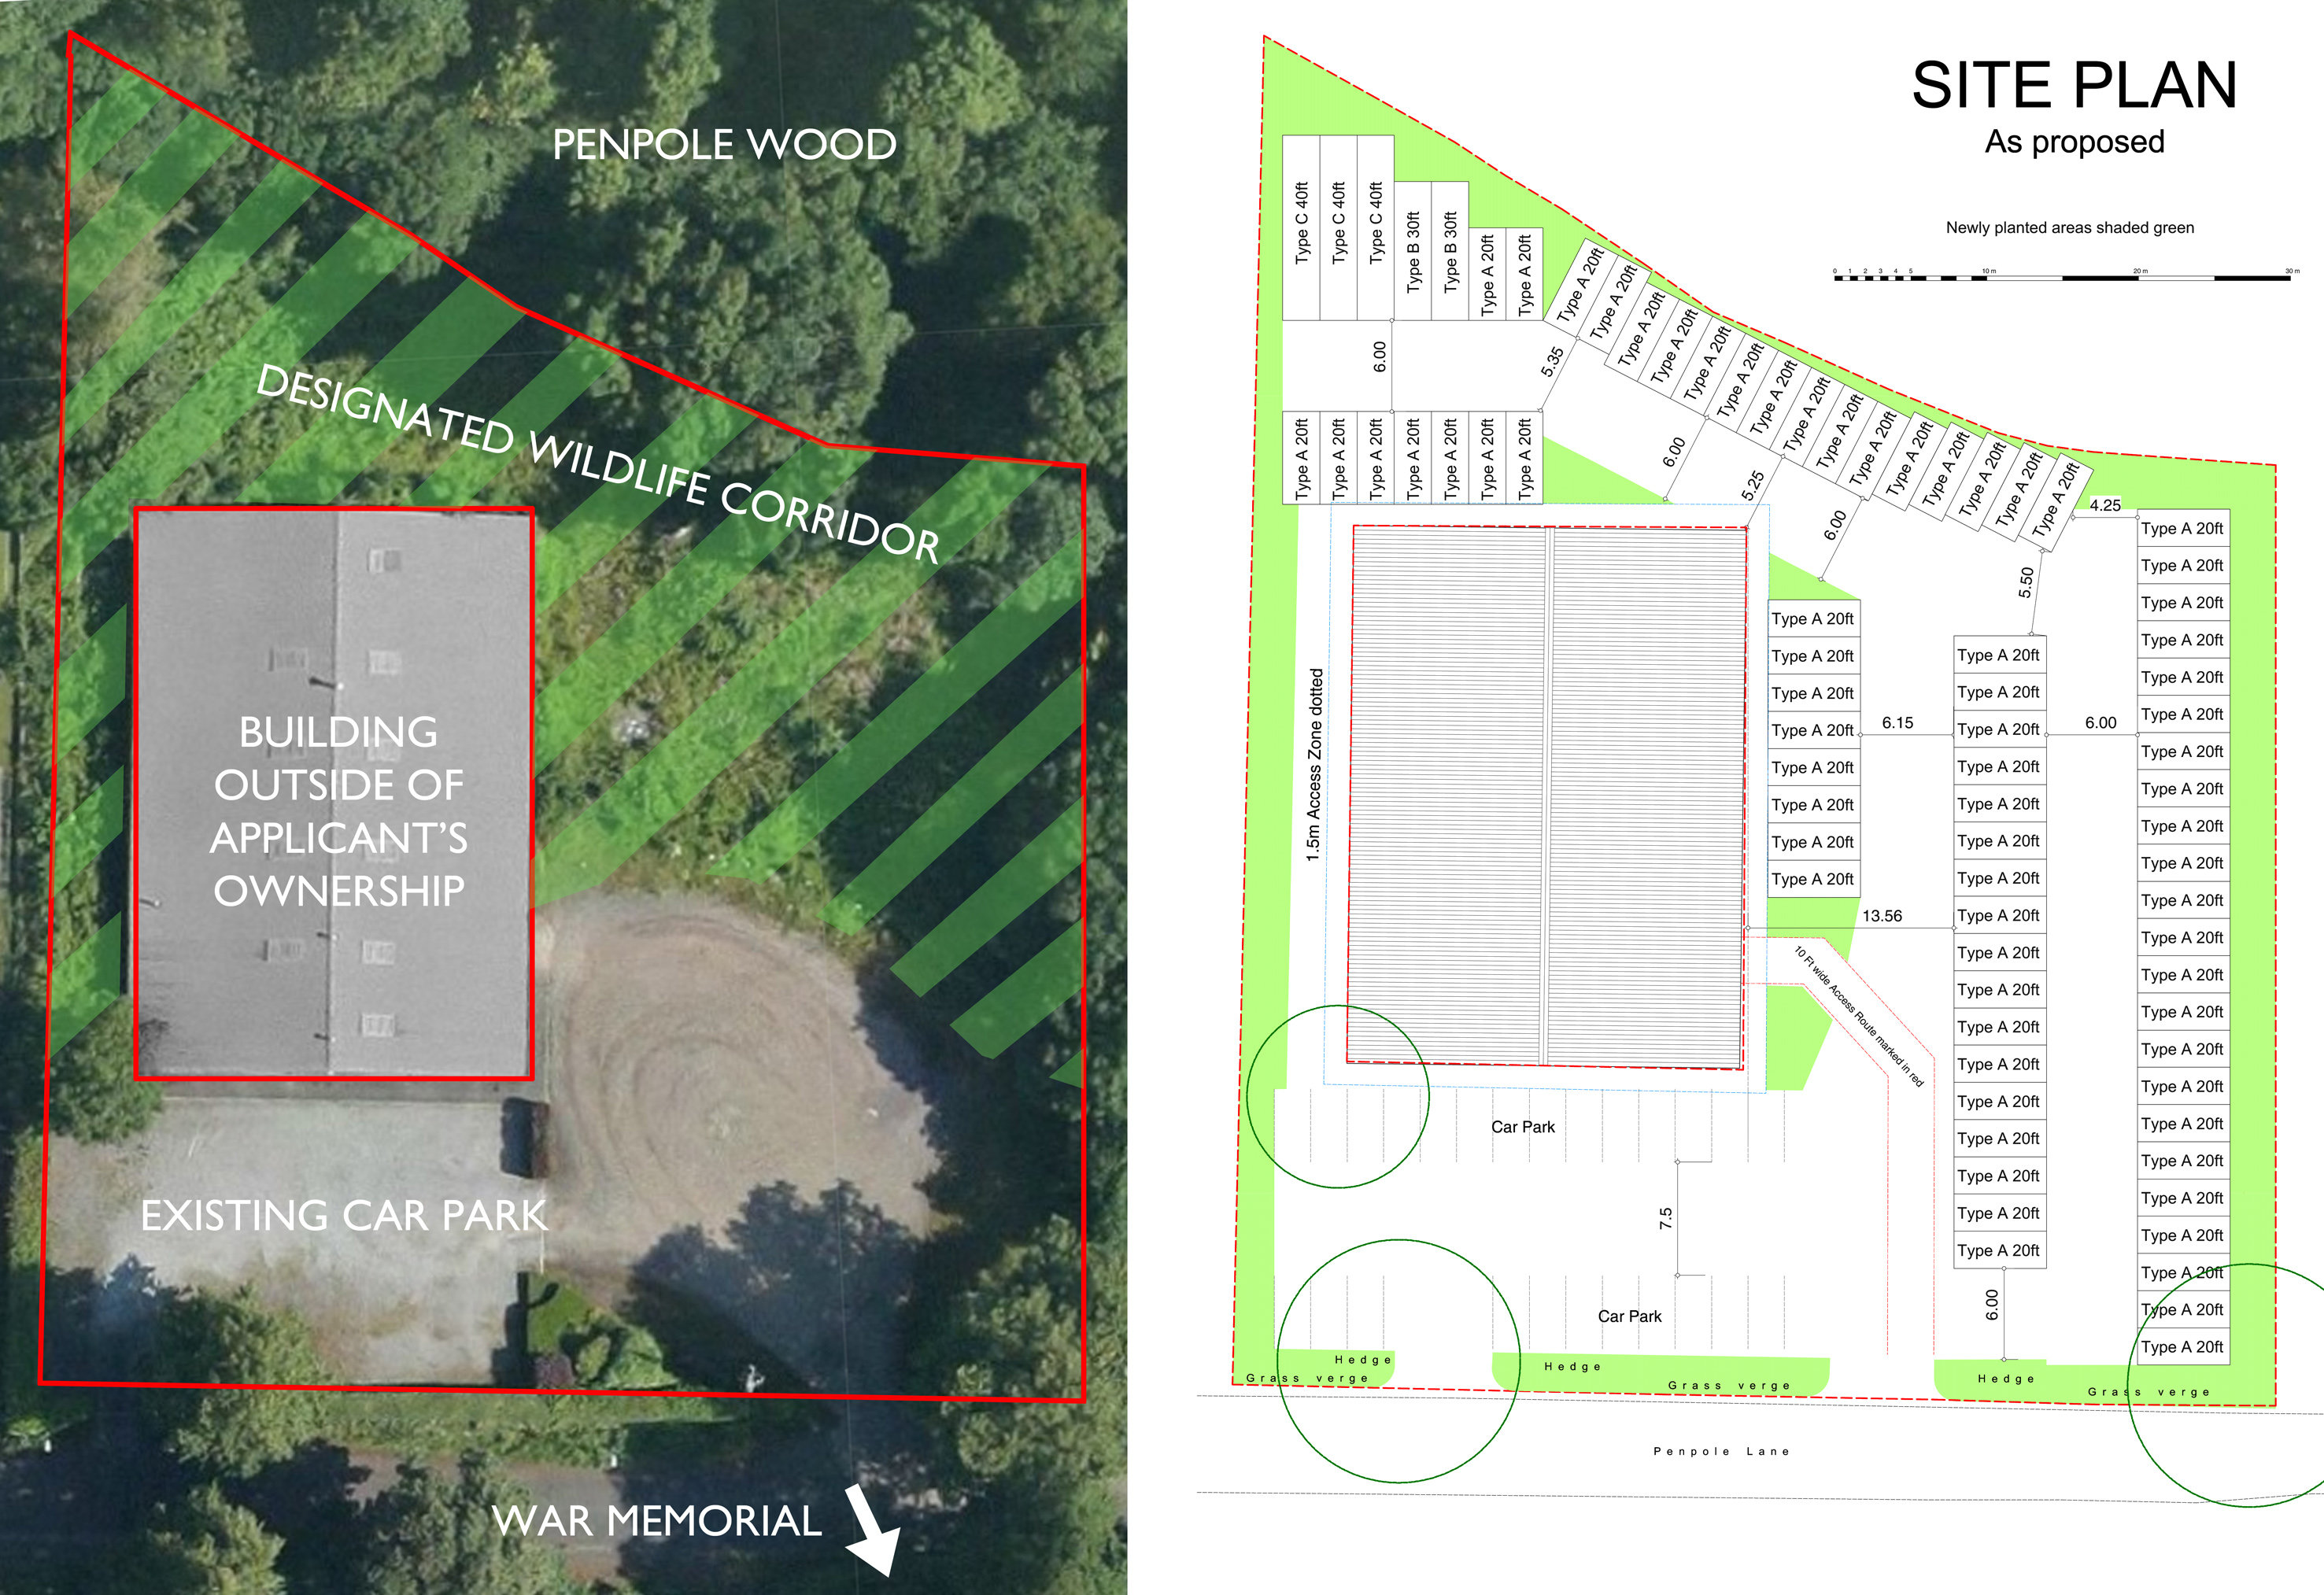 The existing site (left), and the proposed distribution of the 77 containers across the site (right). Click the image to view in more detail.